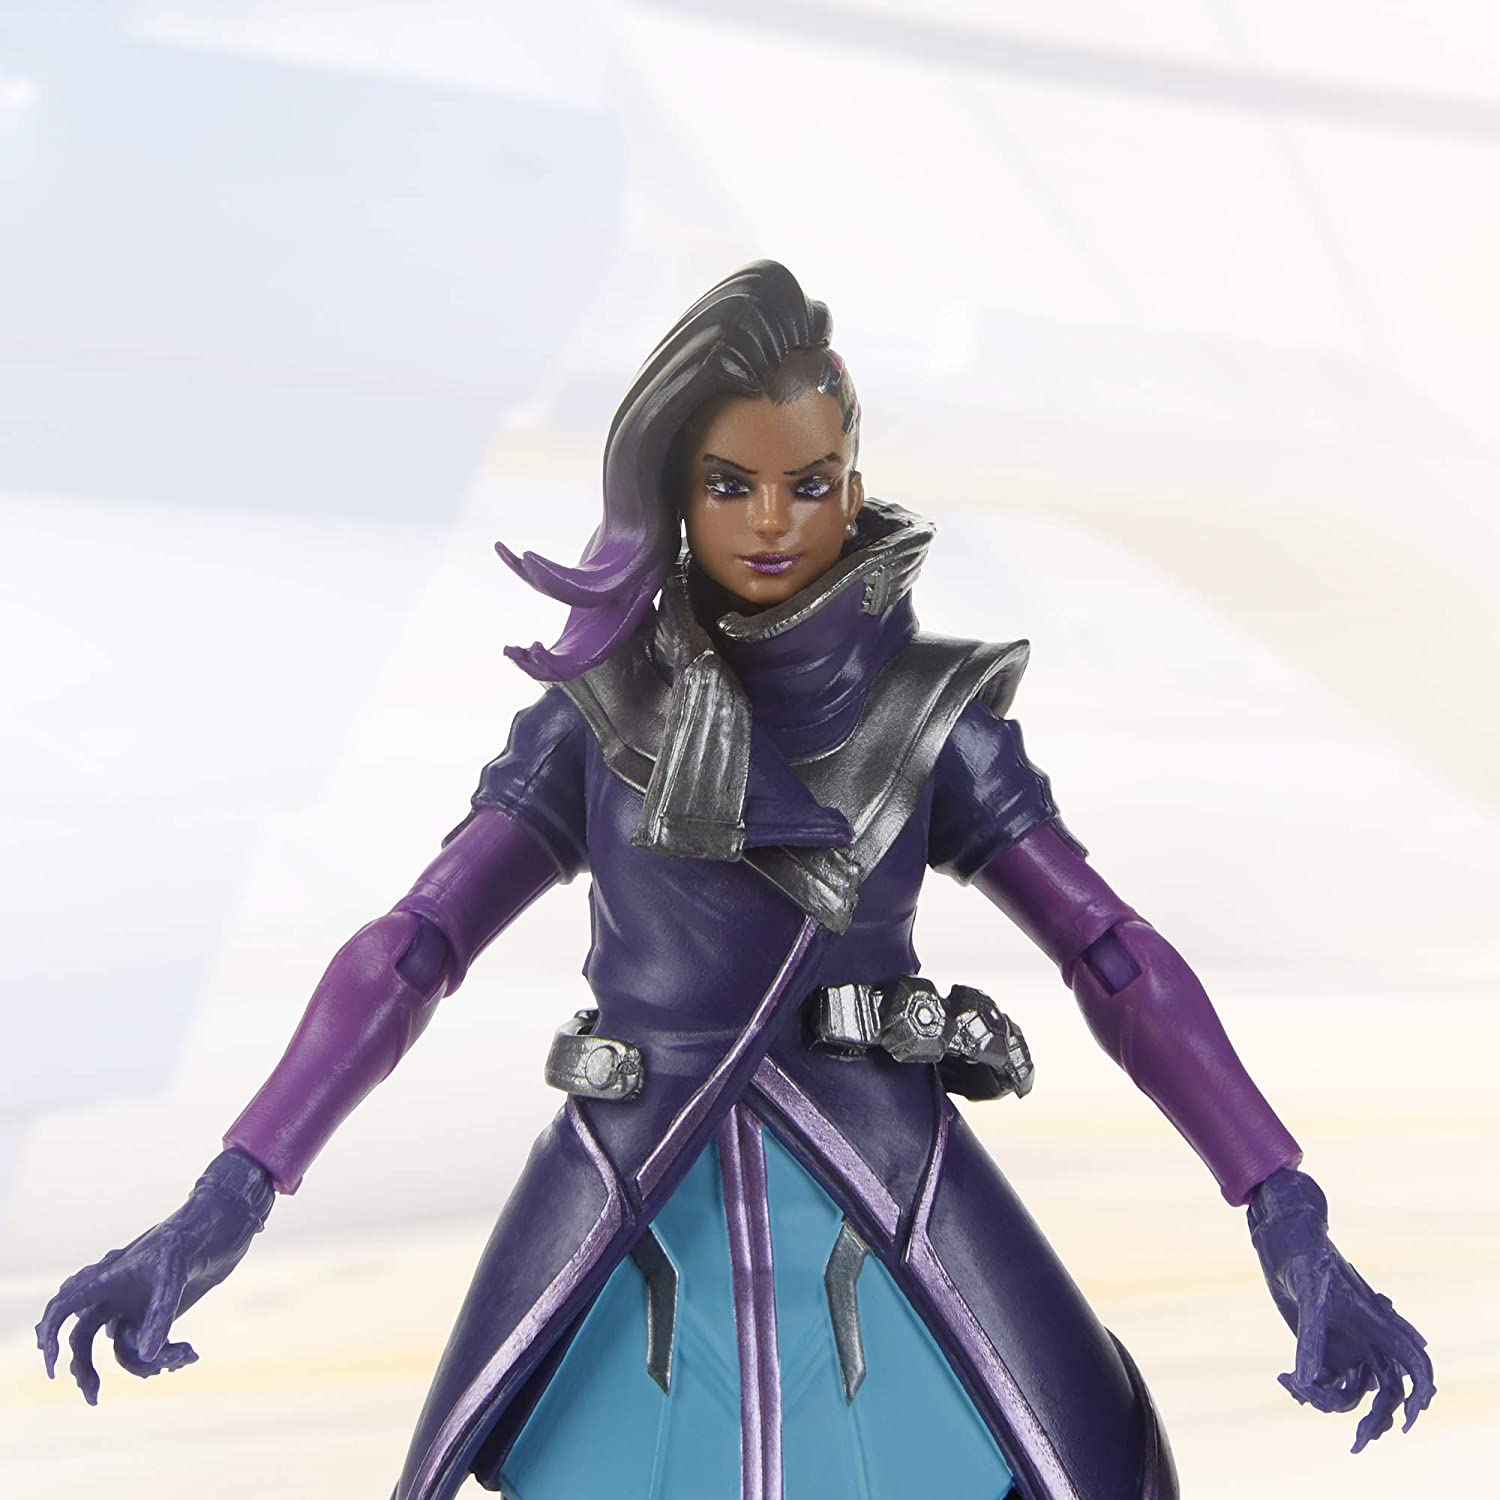 Hasbro Overwatch Ultimates Series Sombra Action Figure Oficial Licenciado